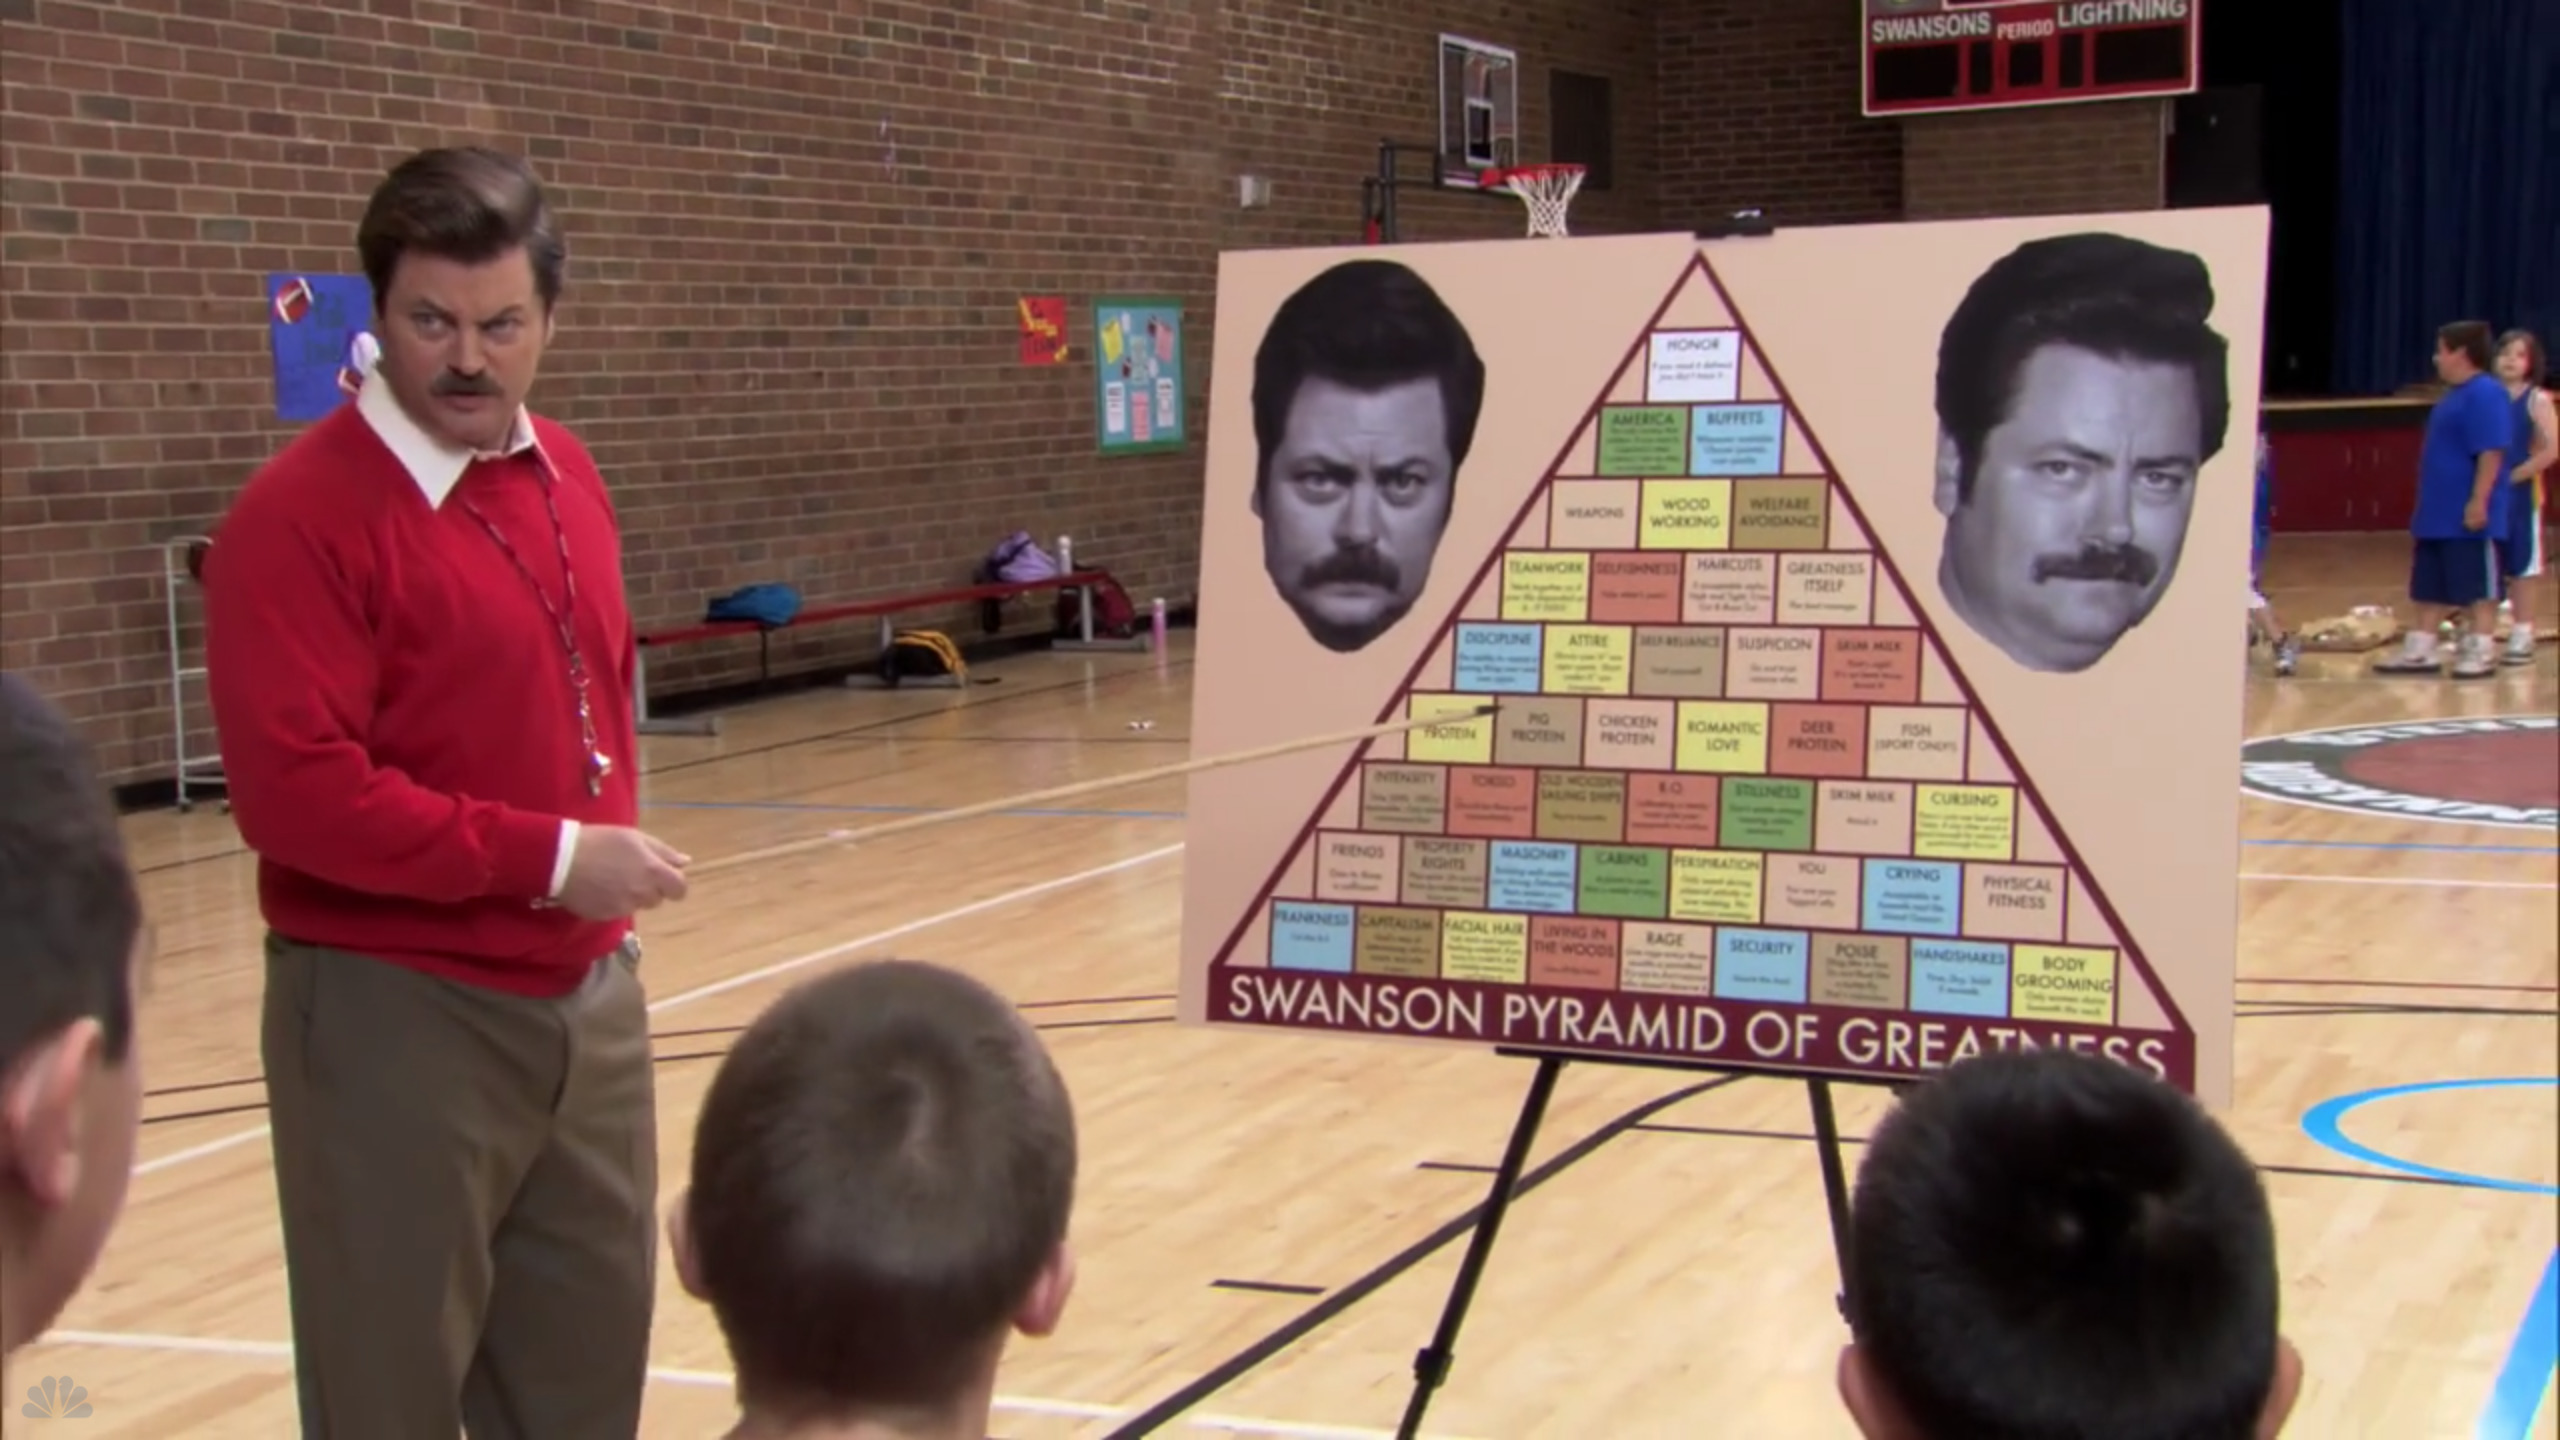 Swanson Pyramid Of Greatness Wallpaper Posted By Zoey Peltier